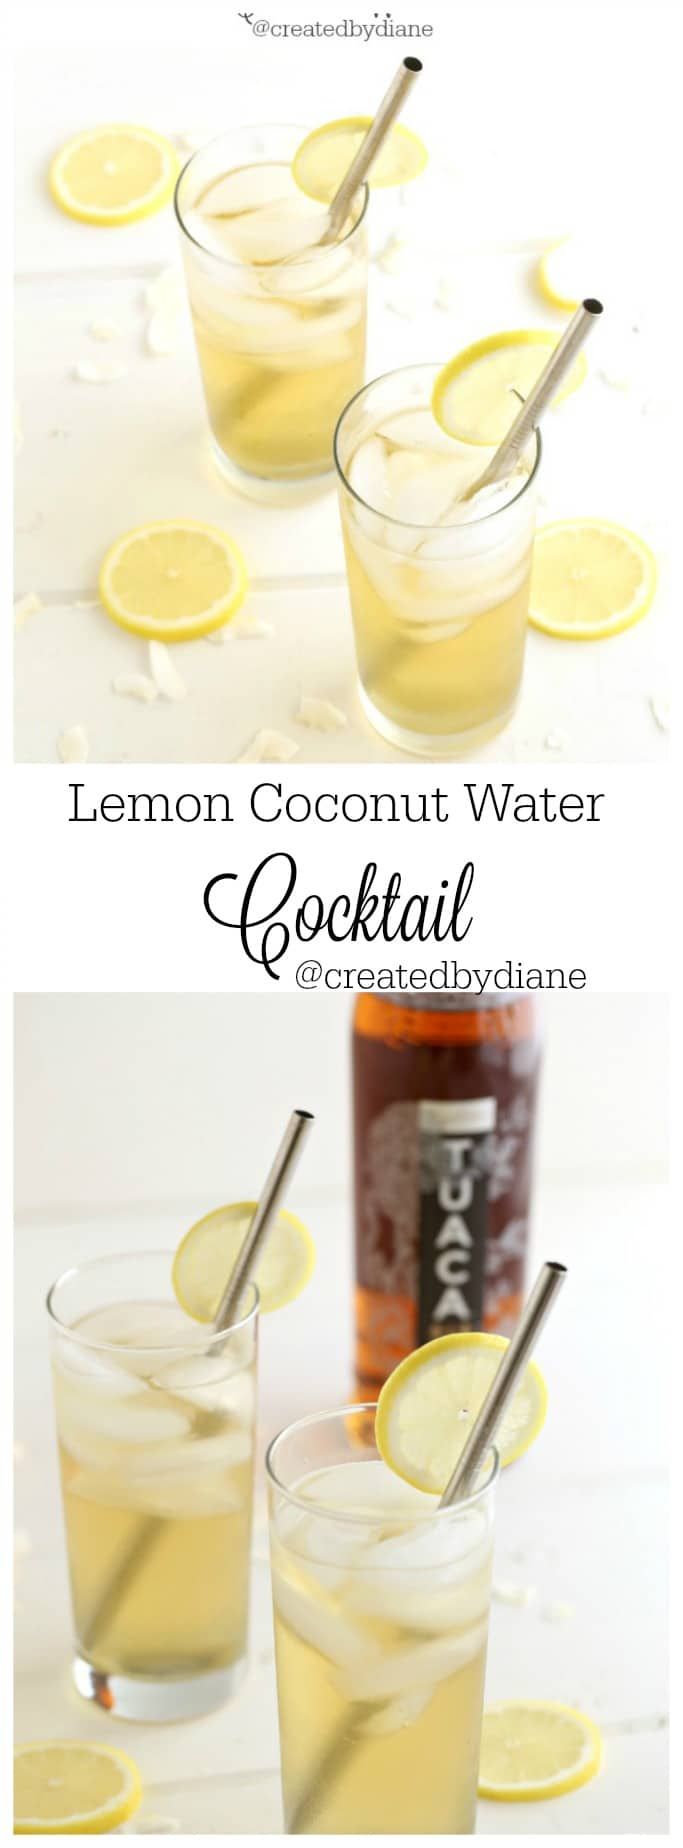 Lemon coconut Water cocktail @createdbydiane